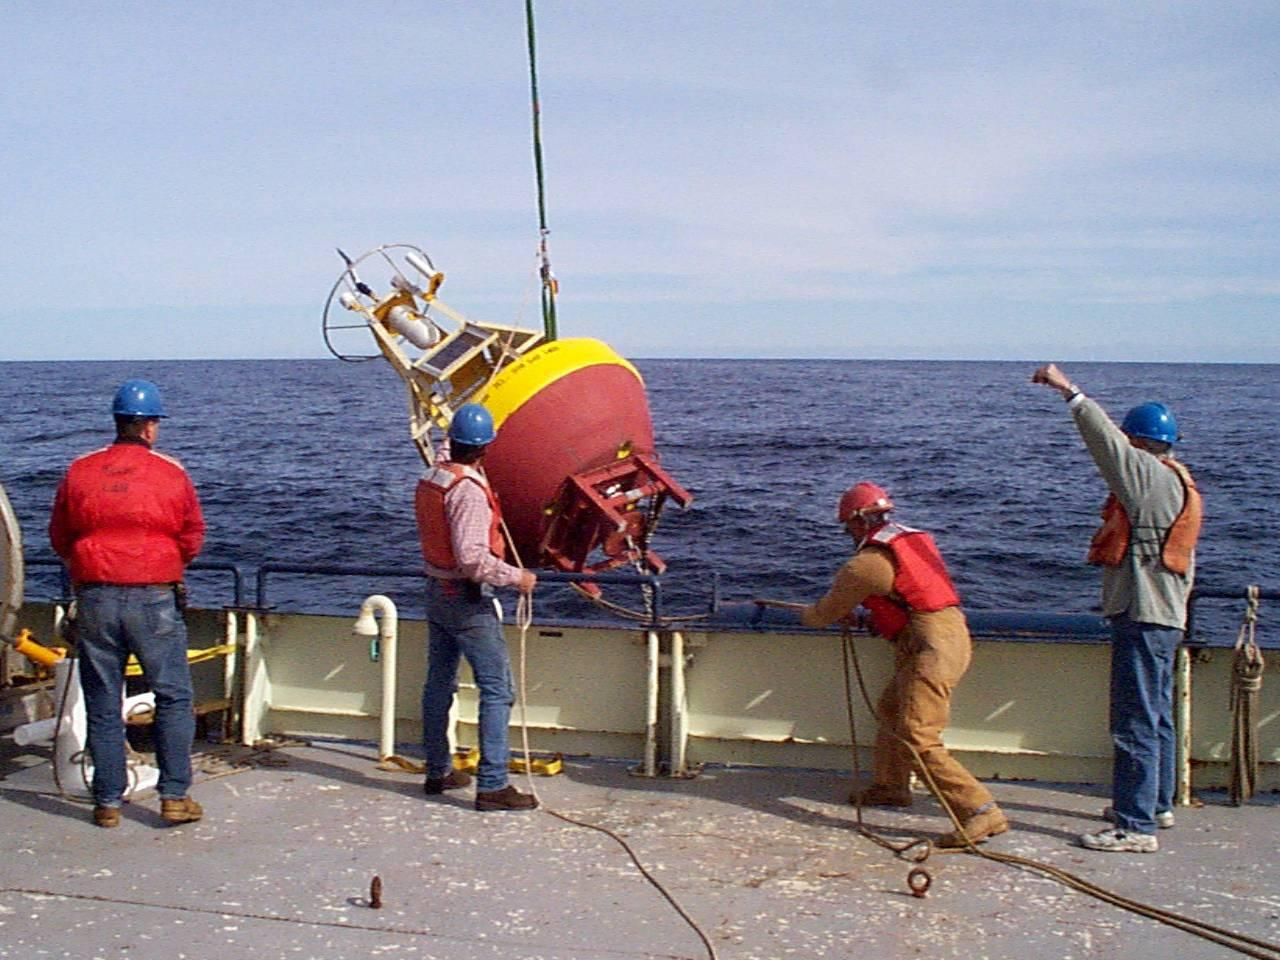 Jim Dunn, Jeff Lord, Horace Medeiros, and Jeff Stolp deploying the Southern Flank buoy on OC331 in October 1998.